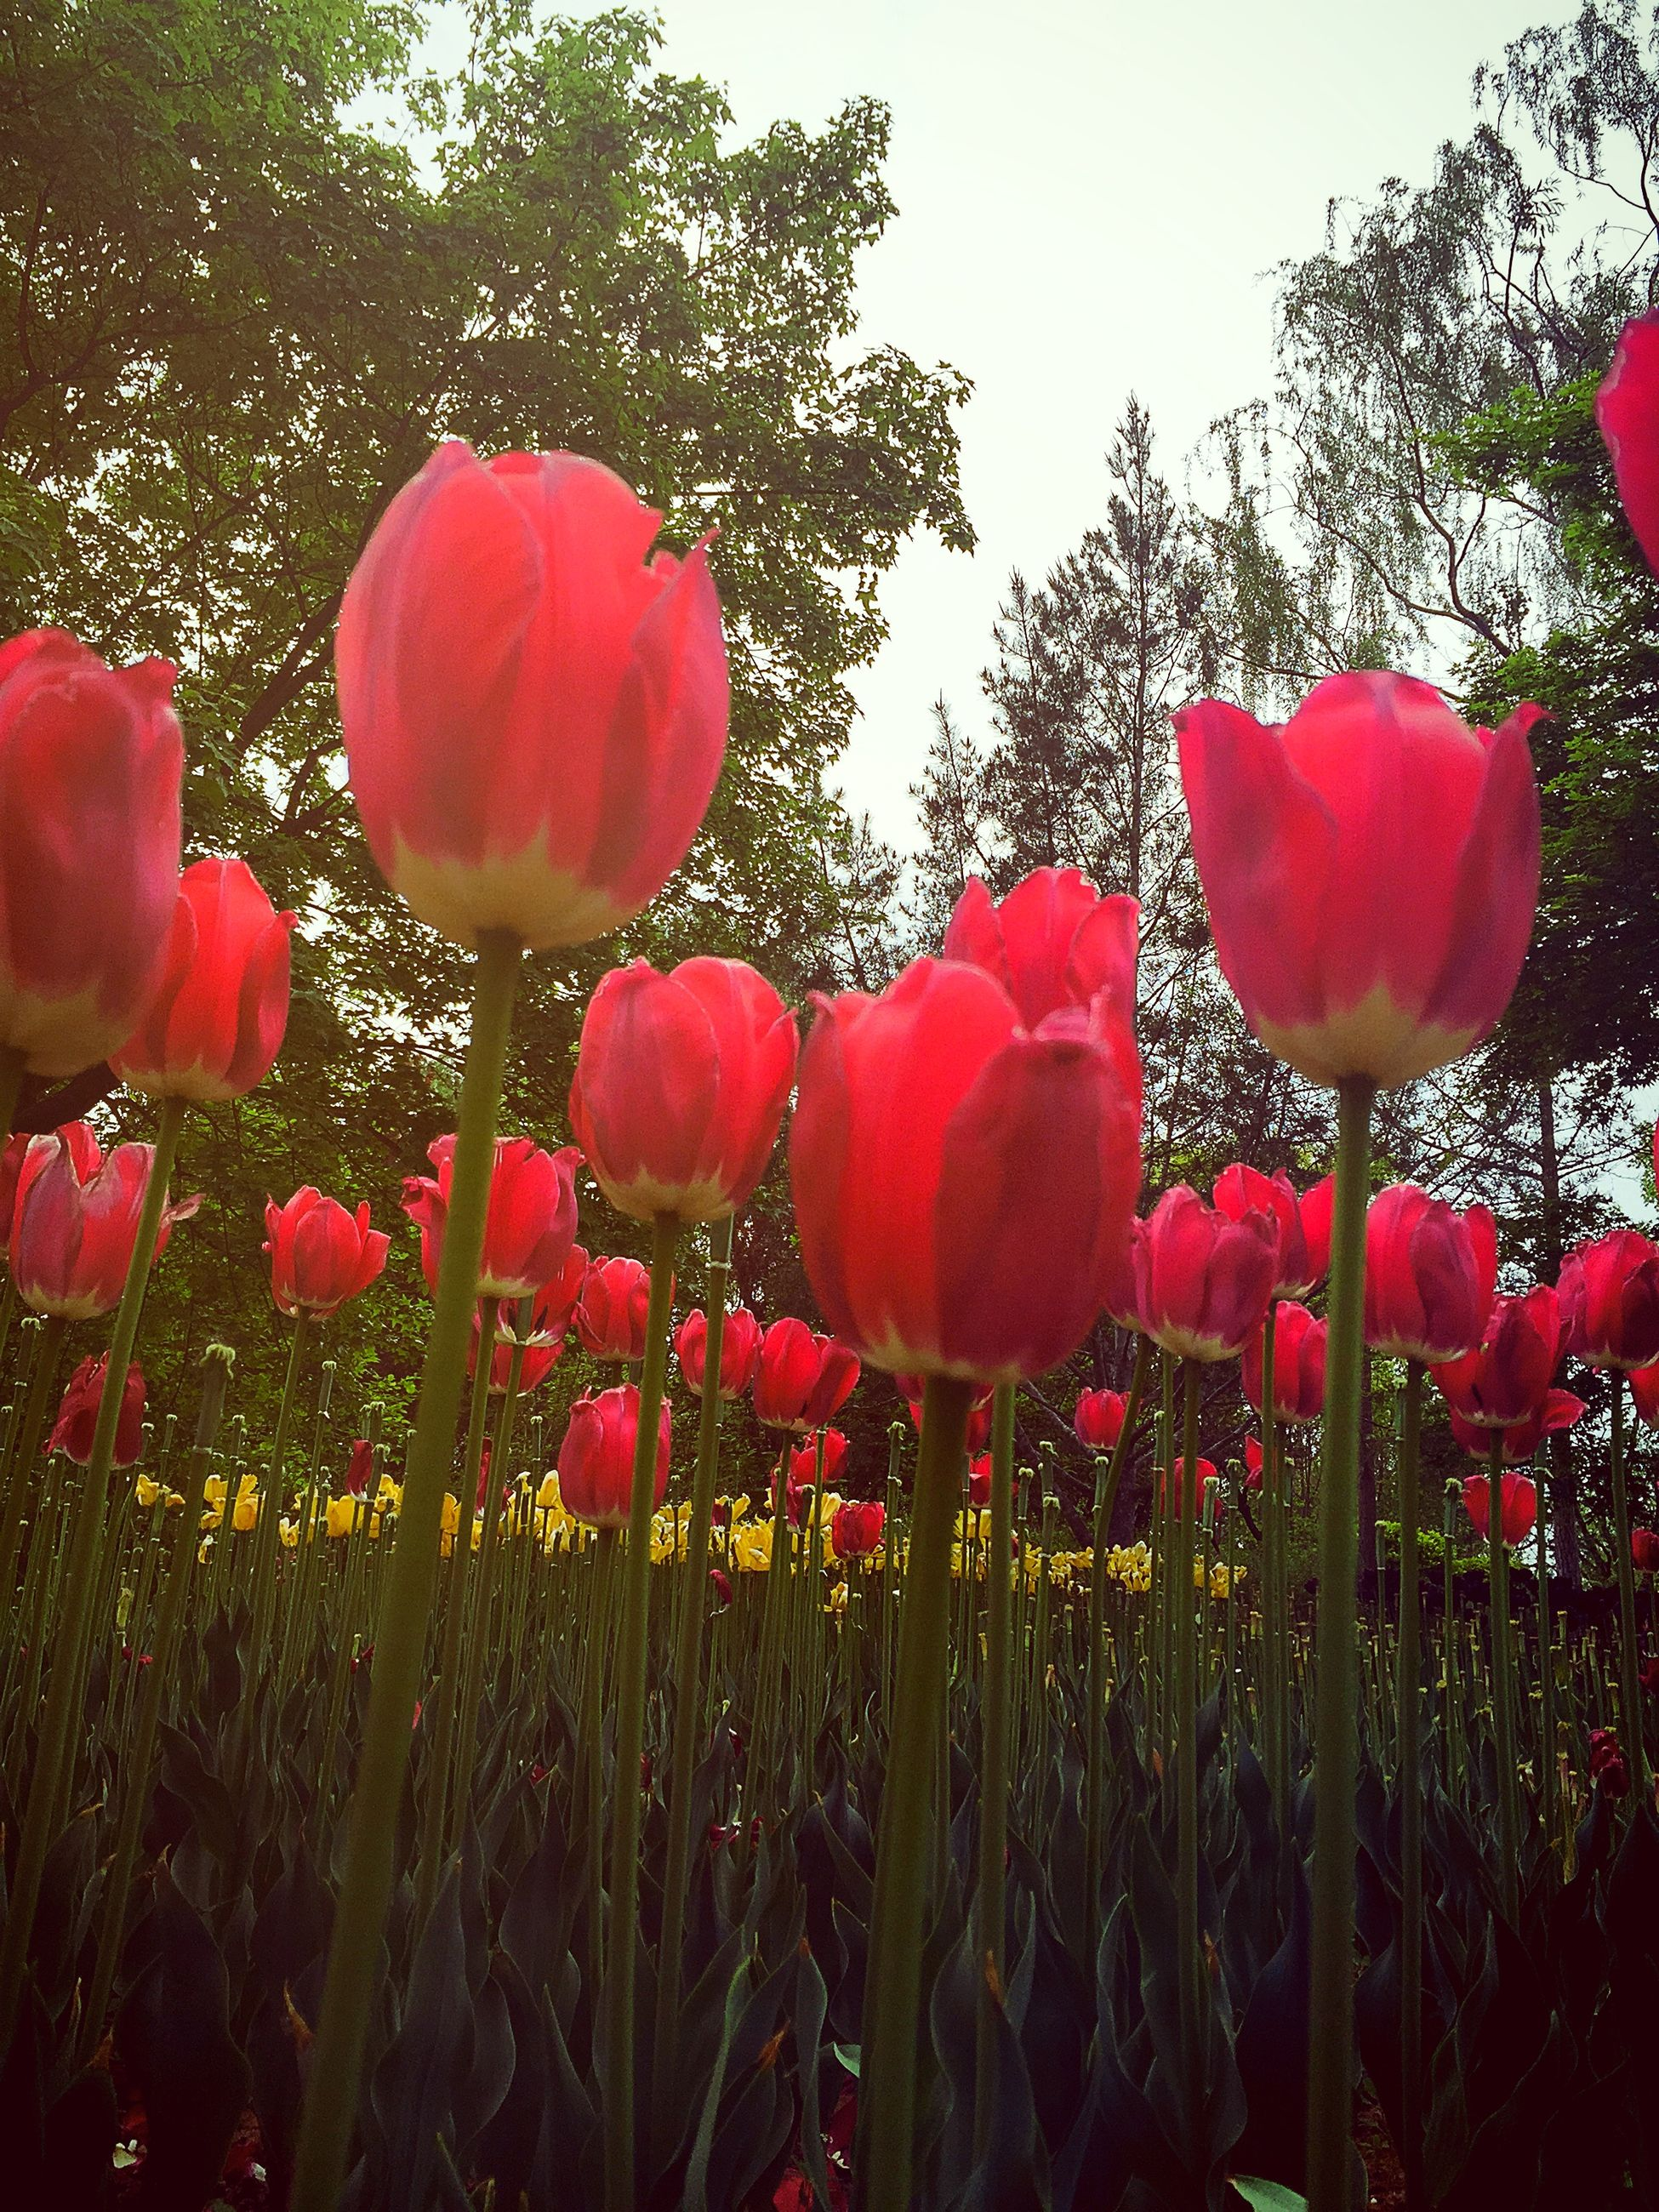 flower, freshness, red, growth, fragility, petal, beauty in nature, tulip, plant, flower head, nature, blooming, field, stem, poppy, in bloom, day, no people, blossom, outdoors